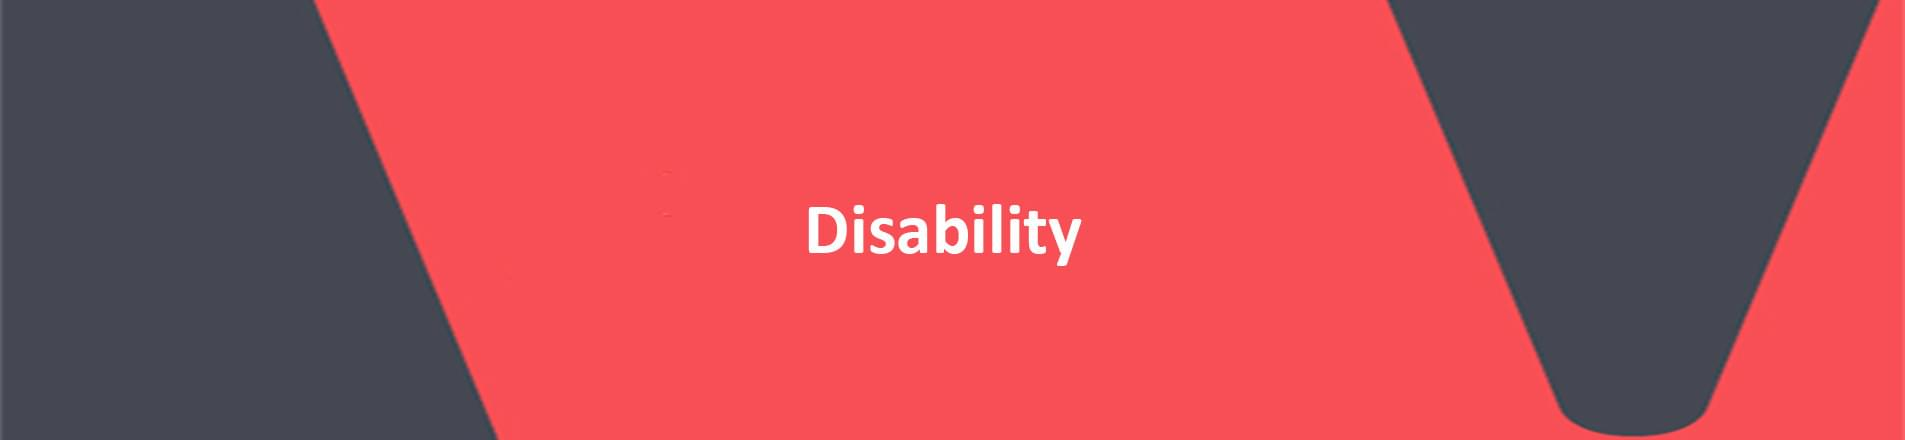 image of the word disability on a red background